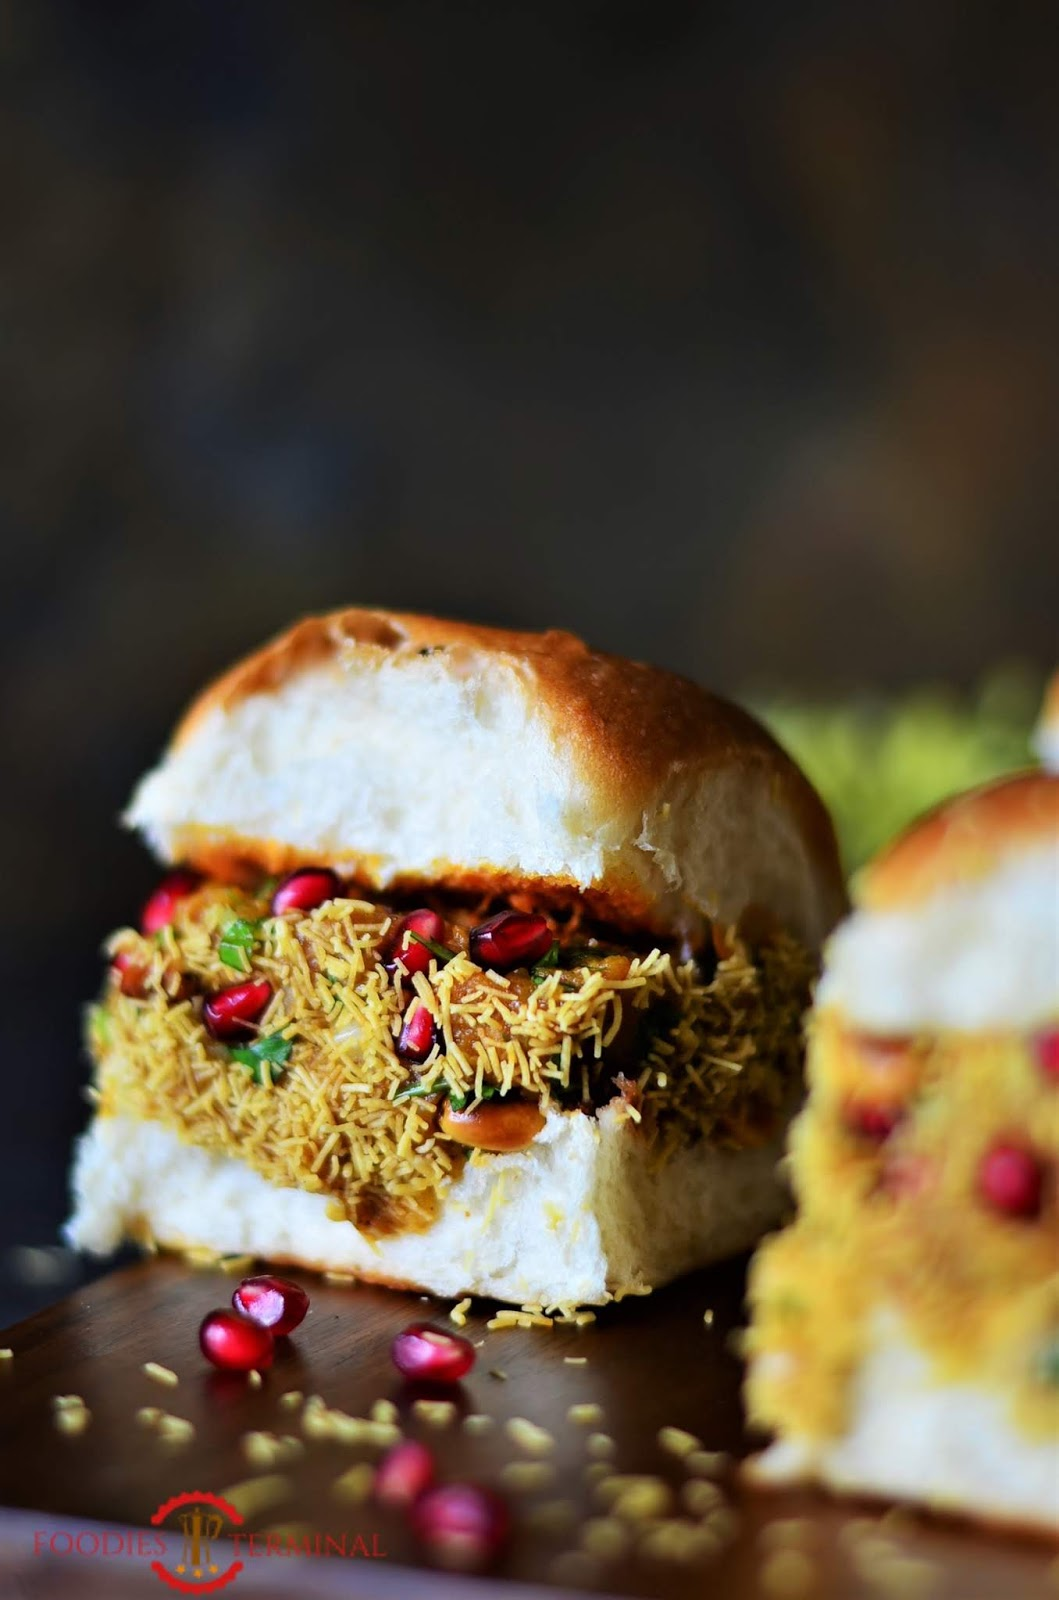 Step by step dabeli recipe-indian street food, all garnished with pomegranate seeds and dusted with sev.